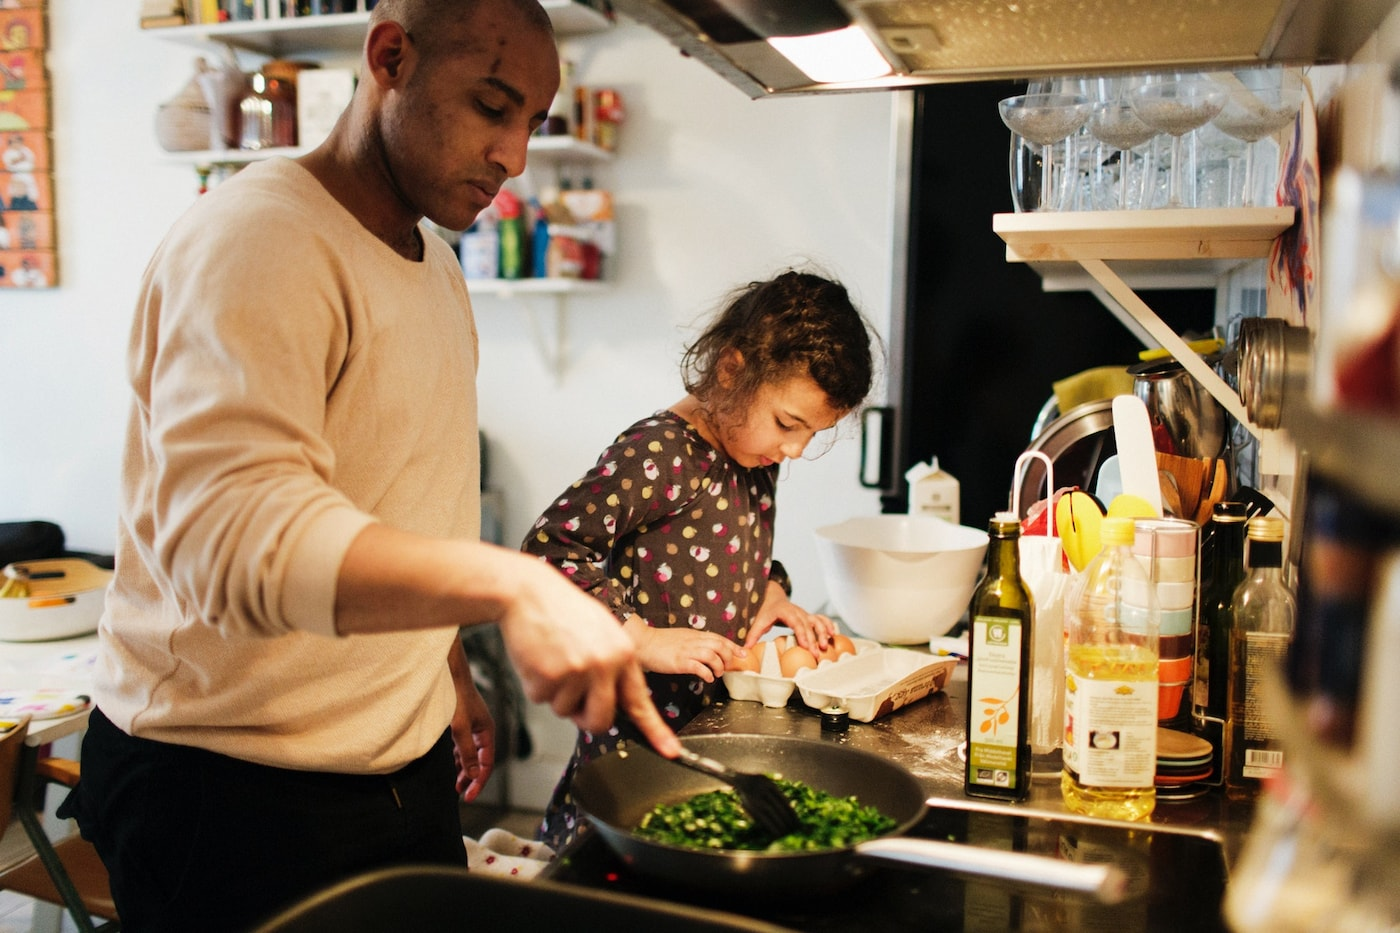 A man in a white sweater is frying vegetables in a pan with a spatula, and a child in a brown patterned sweater is in the kitchen is handling eggs in a carton.